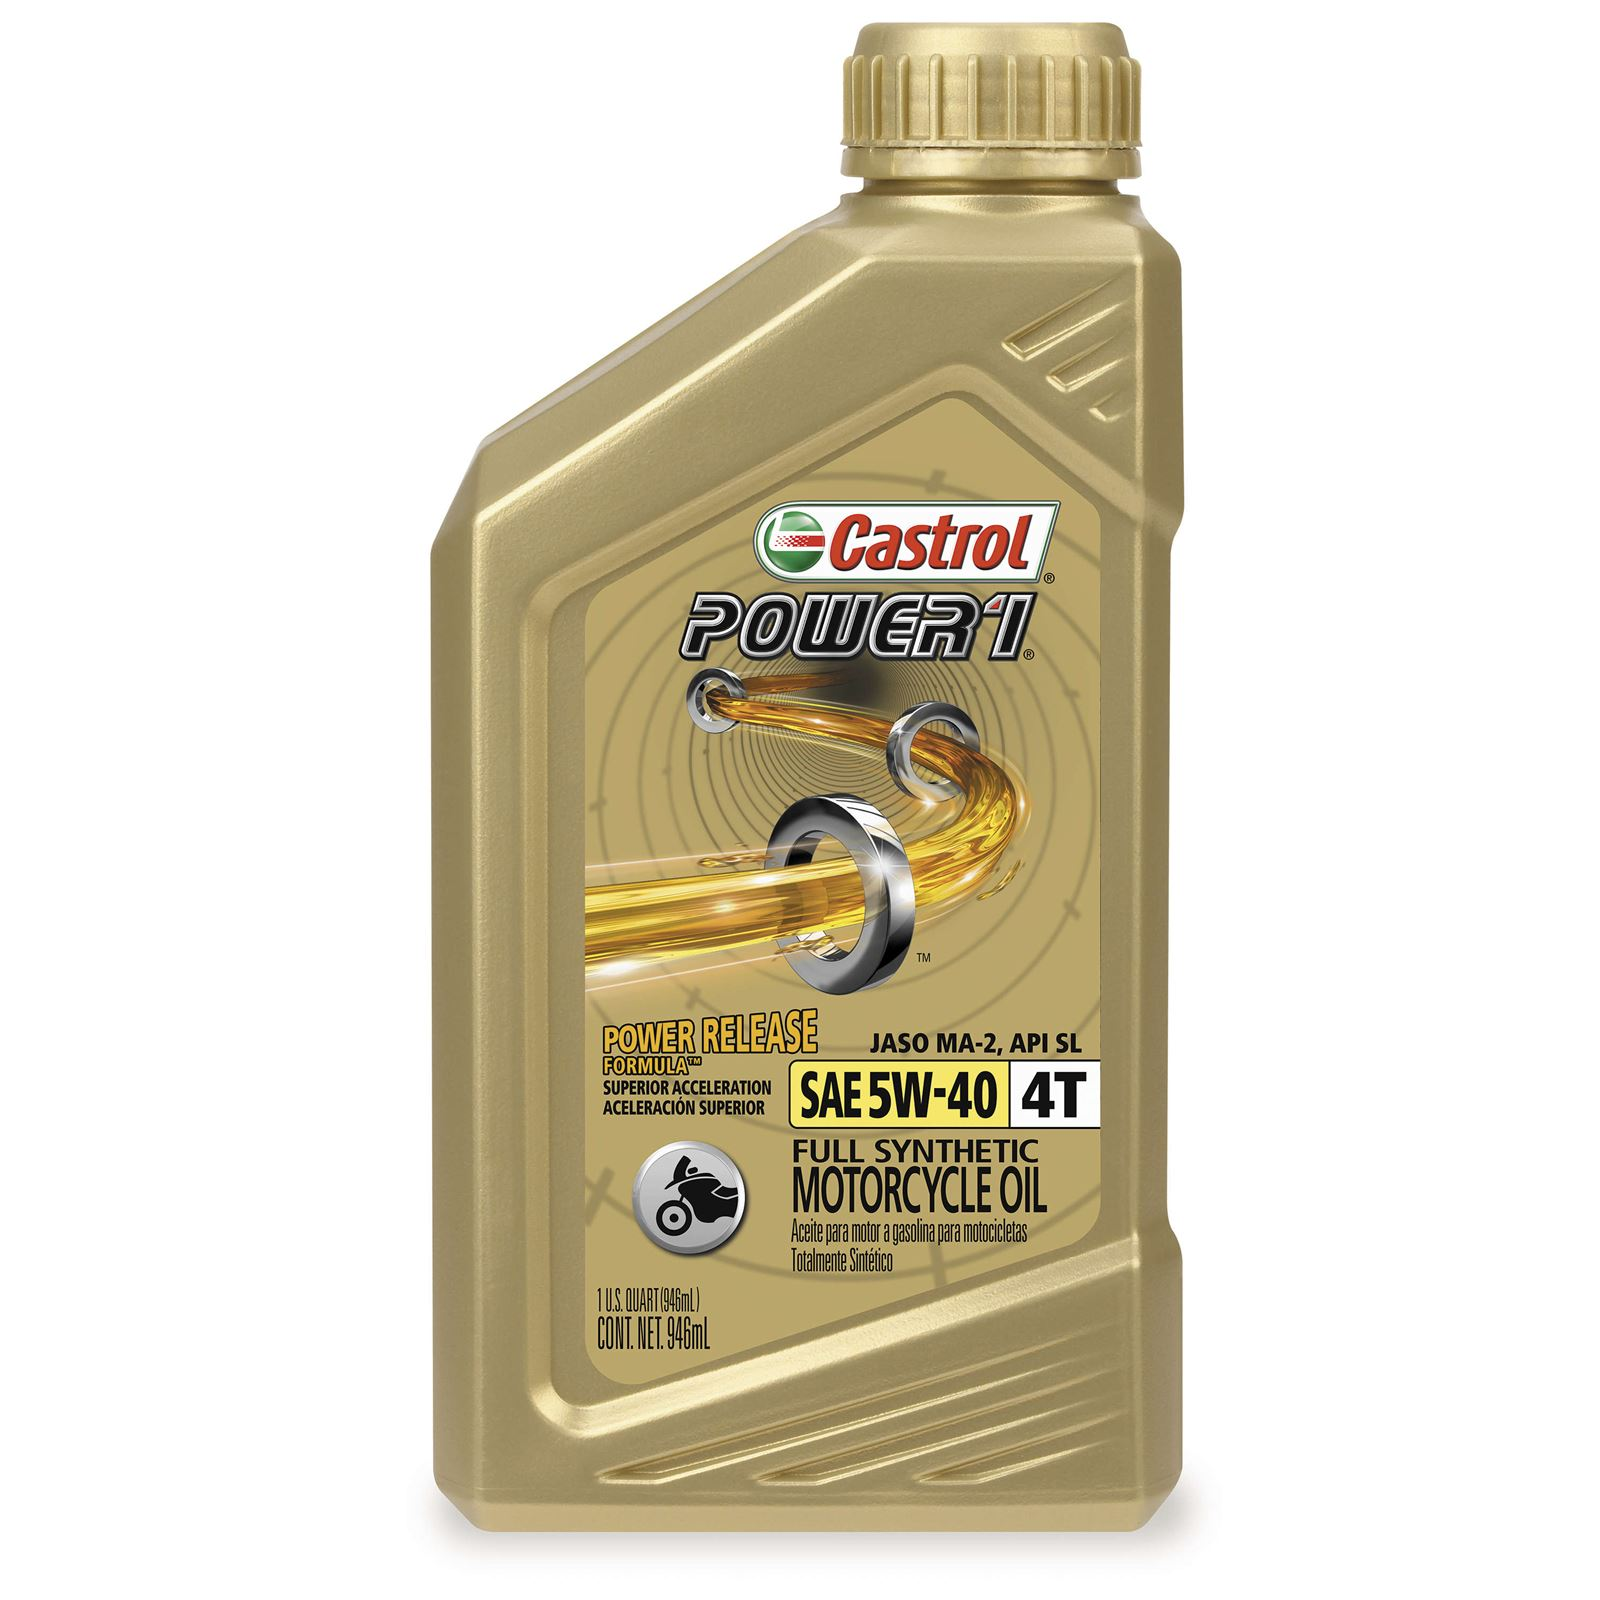 Castrol 100% Synthetic Oil